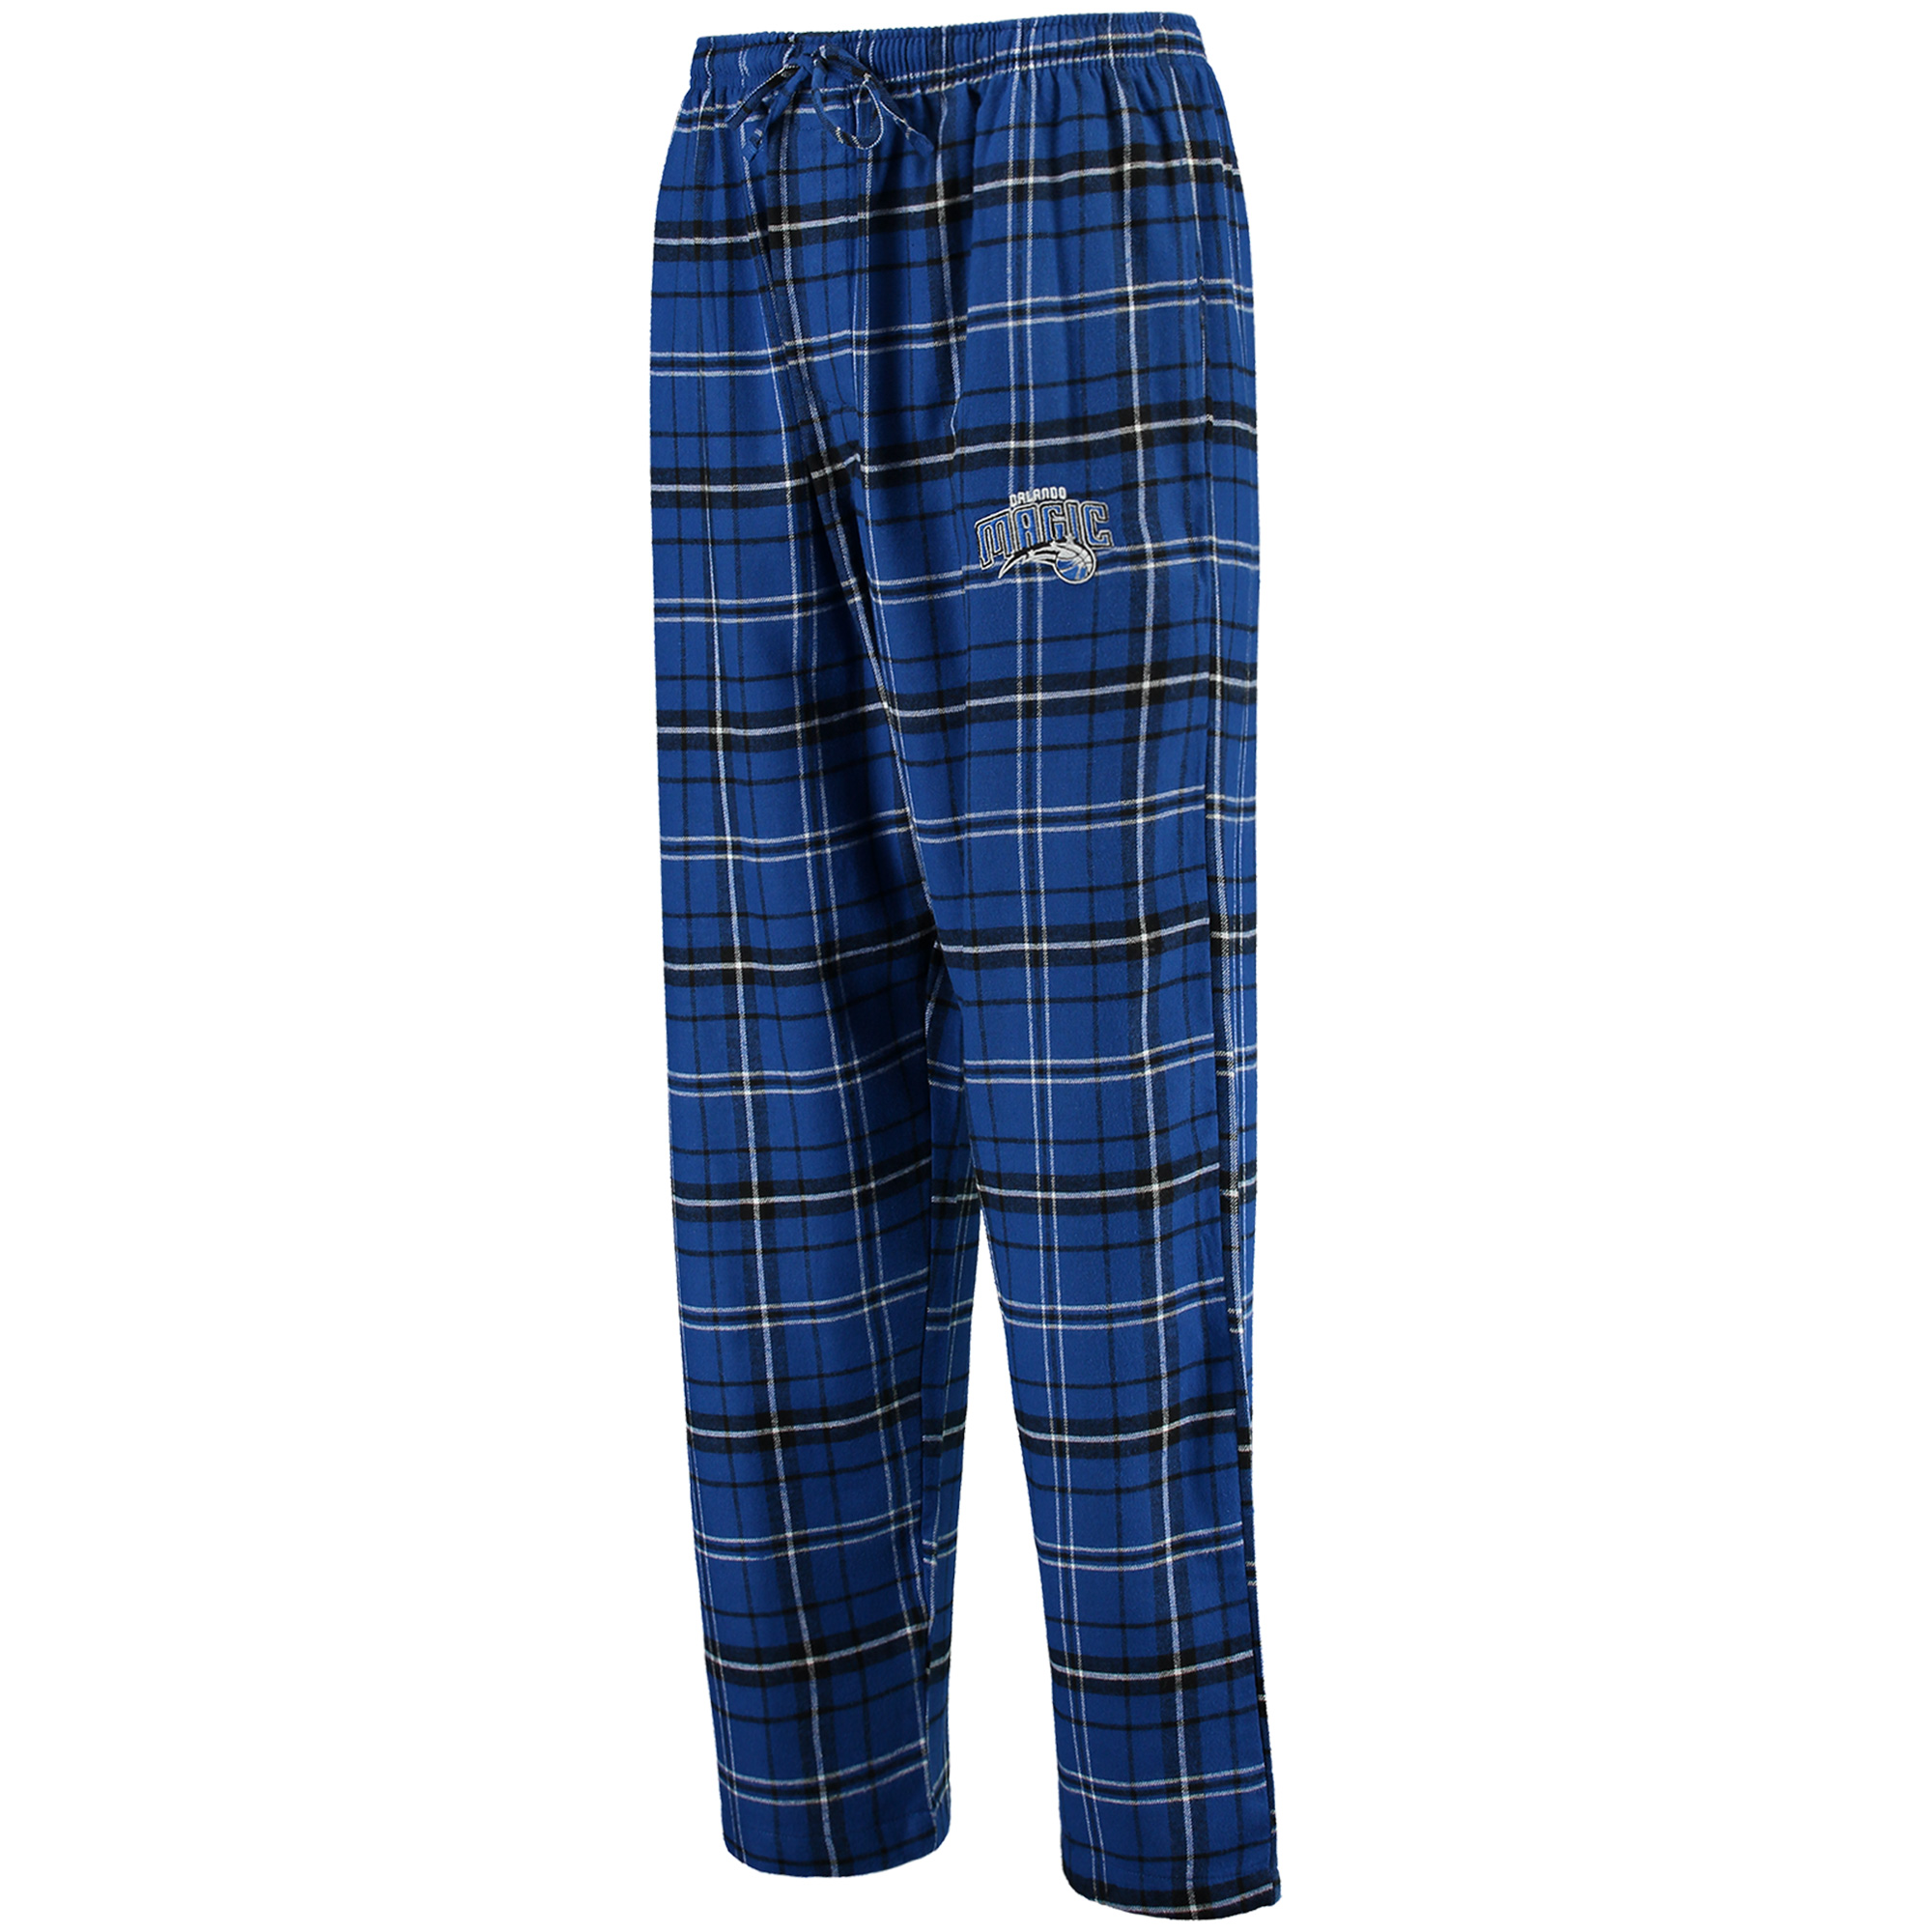 Orlando Magic Concepts Sport Flannel Pajamas Pants - Royal/Black - XL